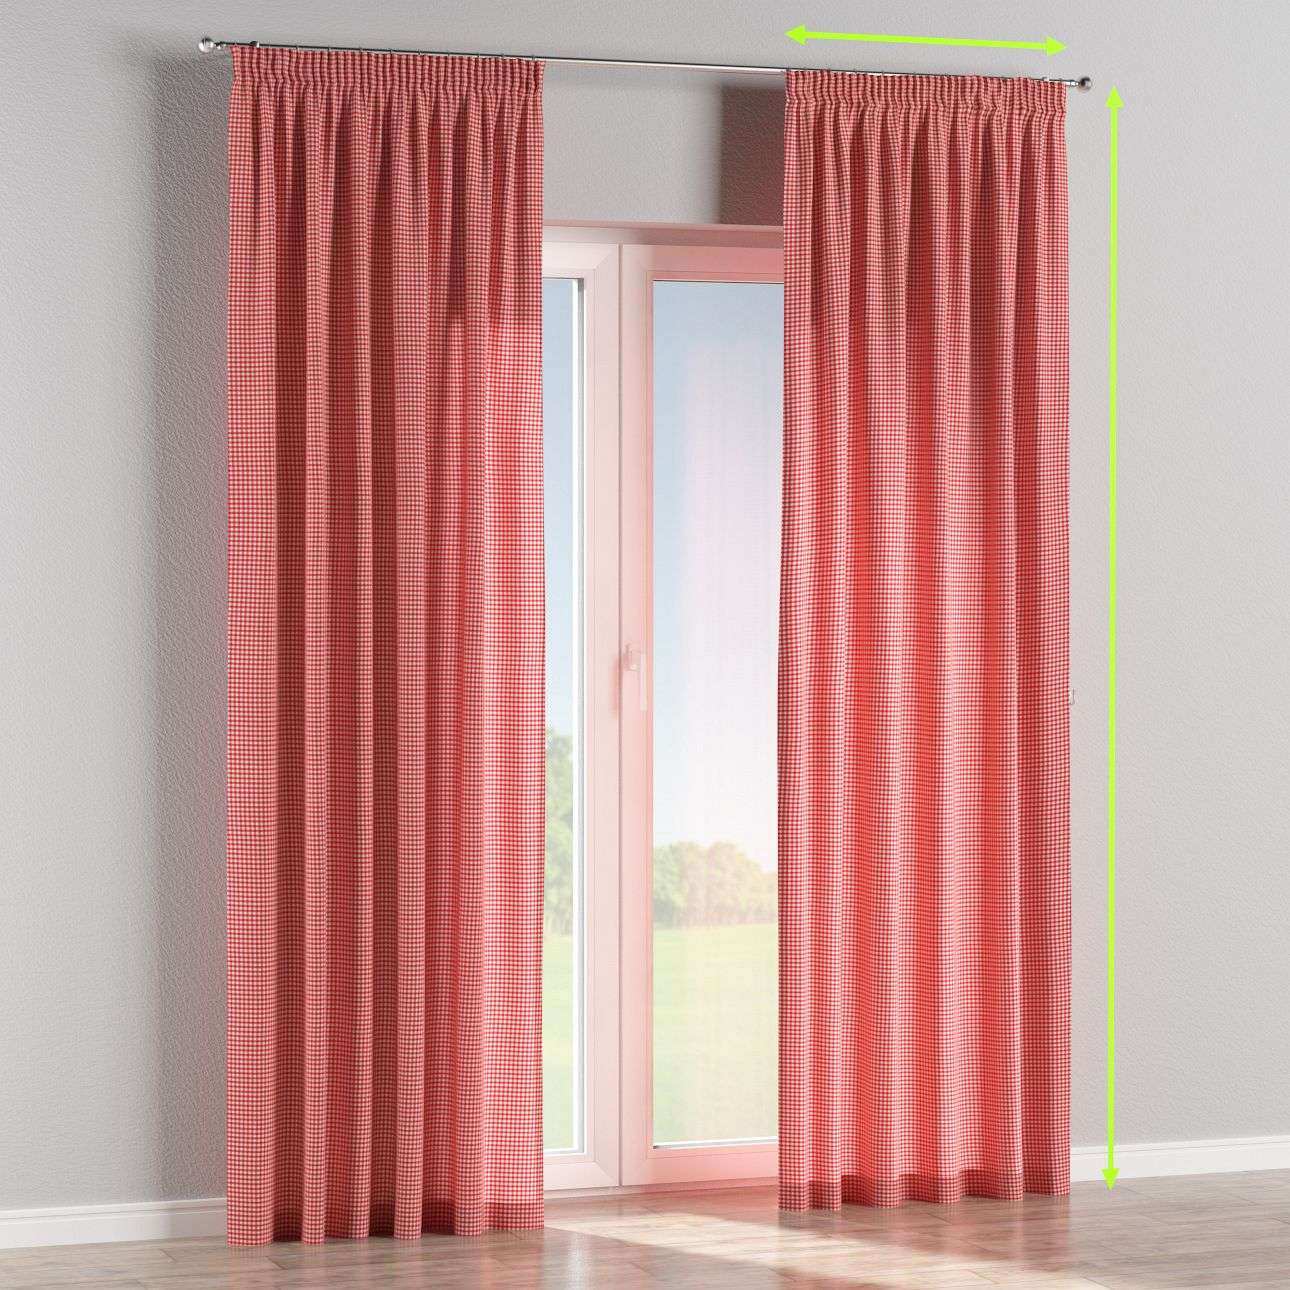 Pencil pleat curtain in collection Quadro, fabric: 136-15